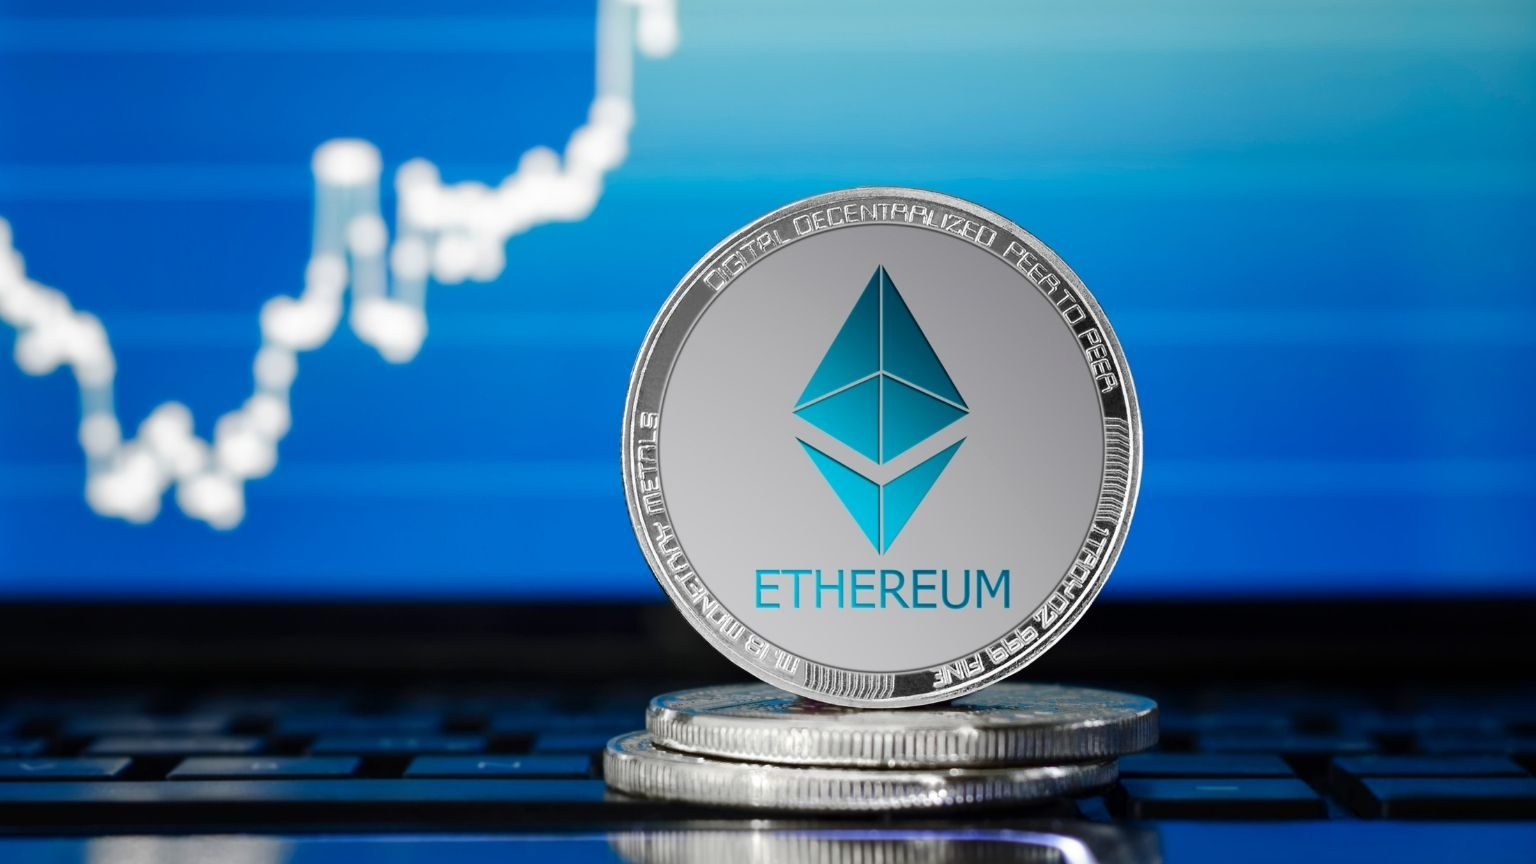 Ethereum physical coin